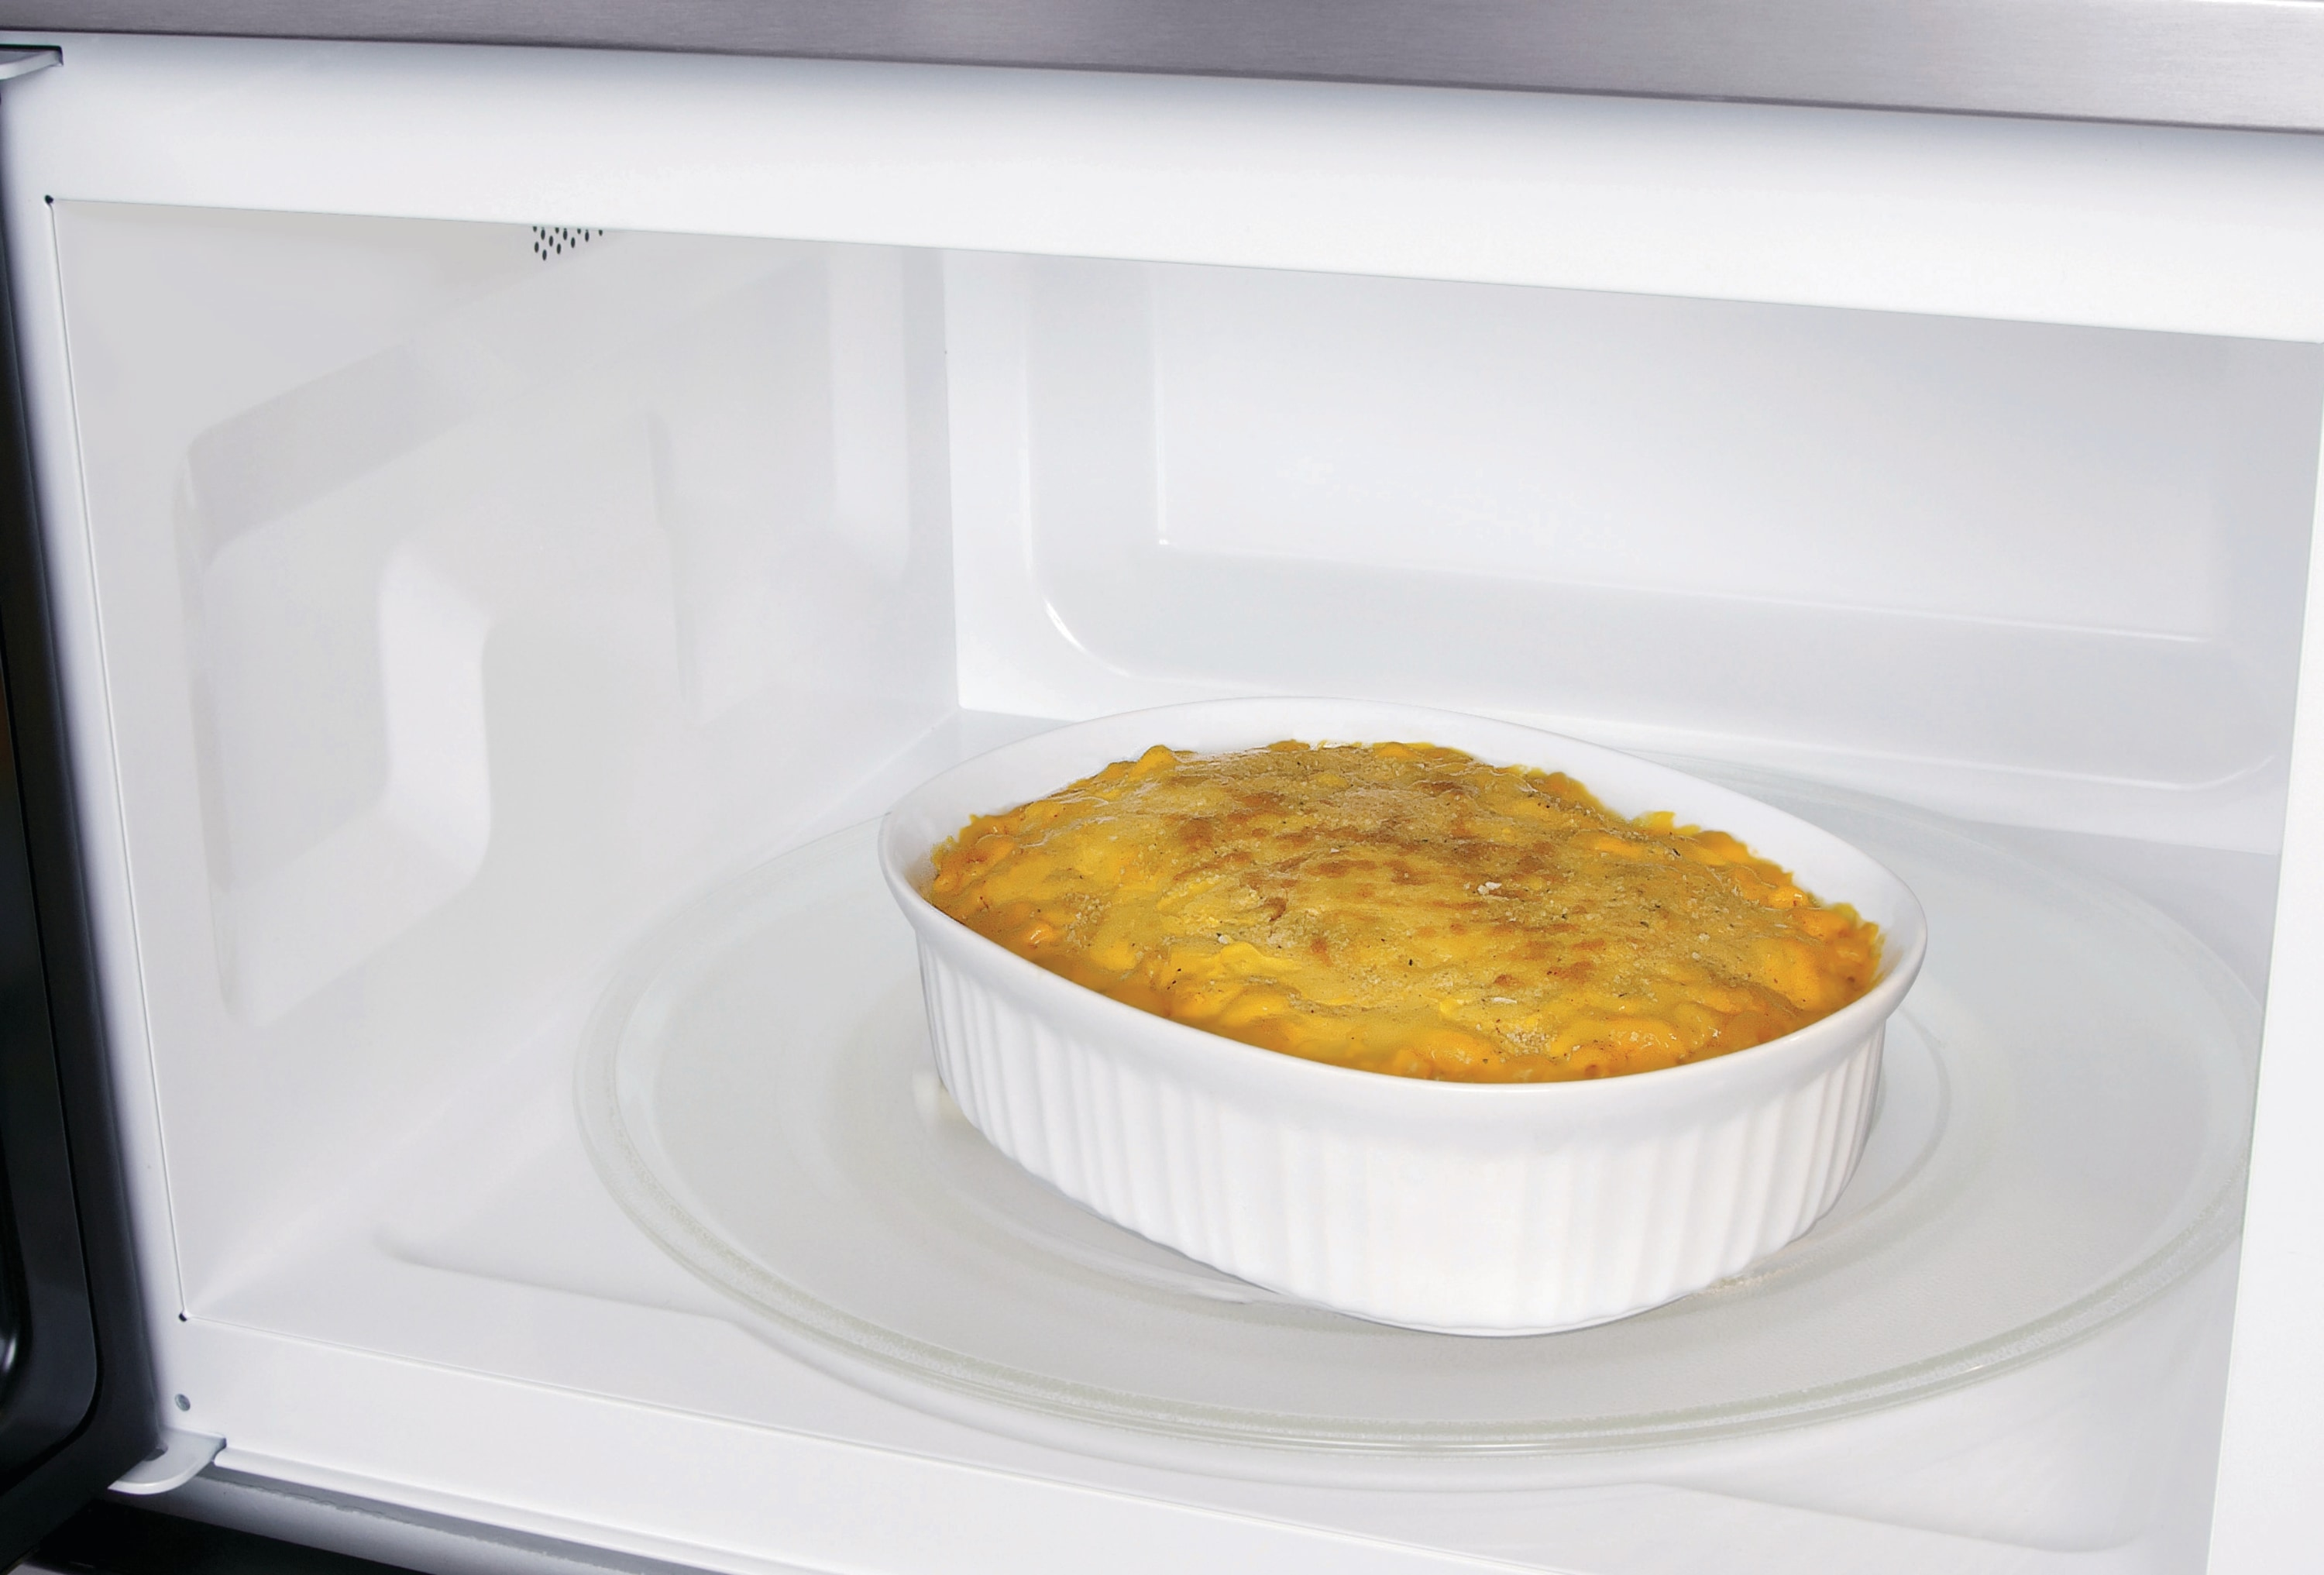 2.0 Cu. Ft. Built-In Microwave